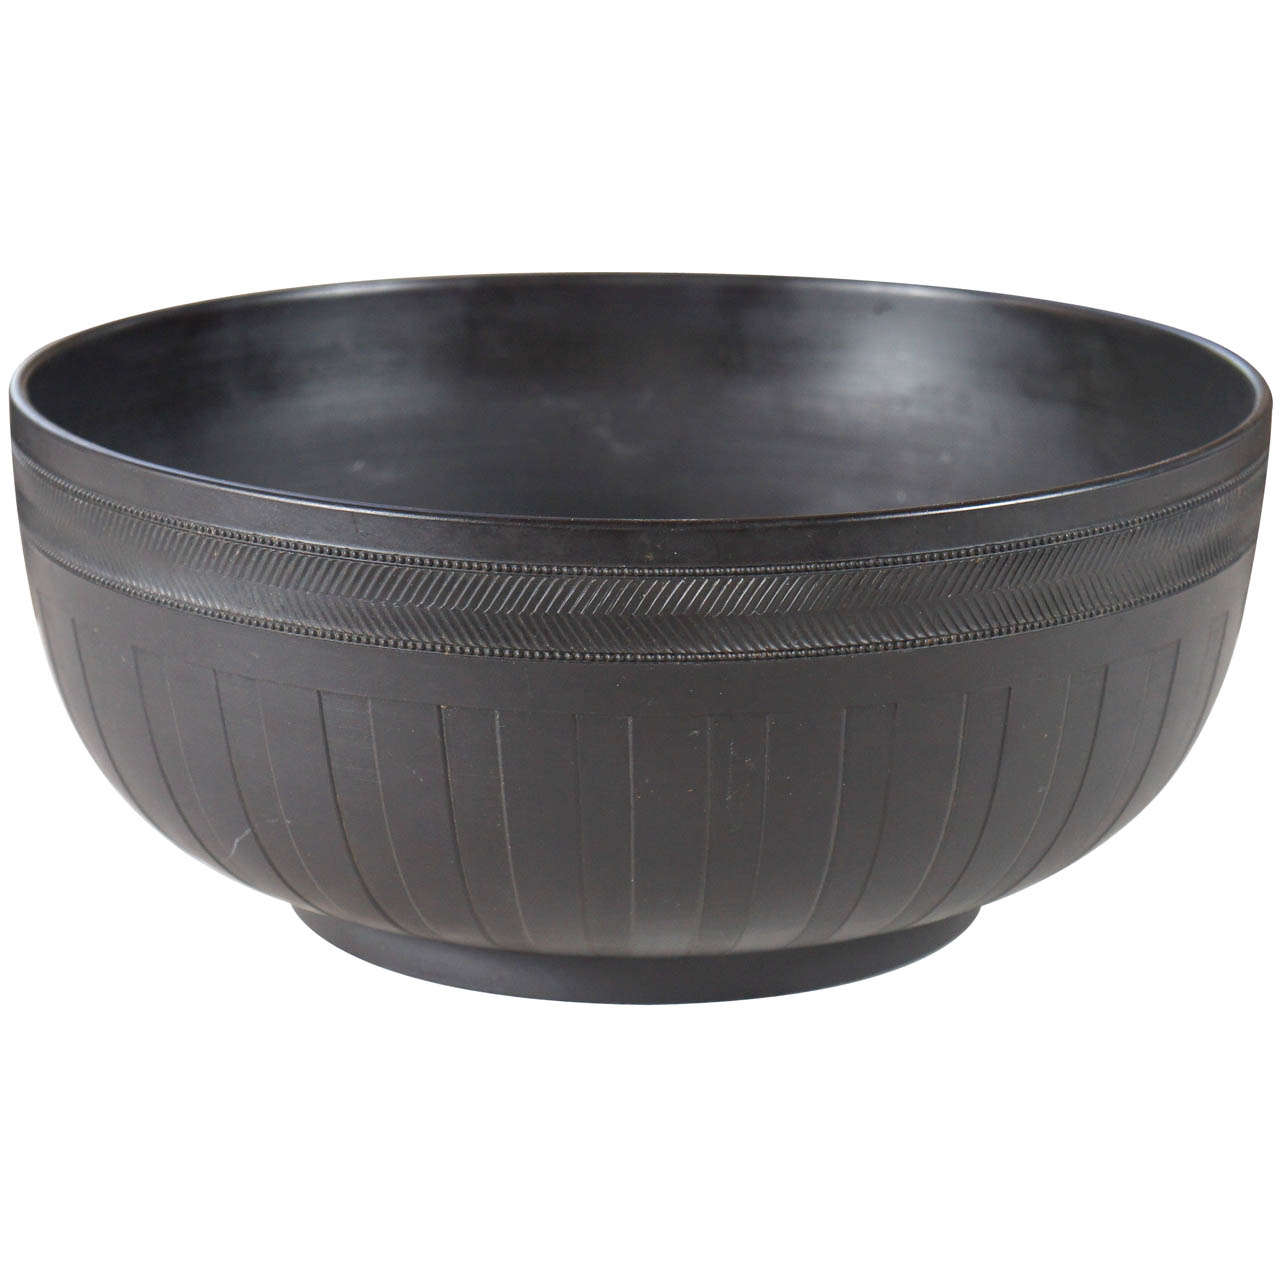 Wedgwood Basalt Bowl At 1stdibs